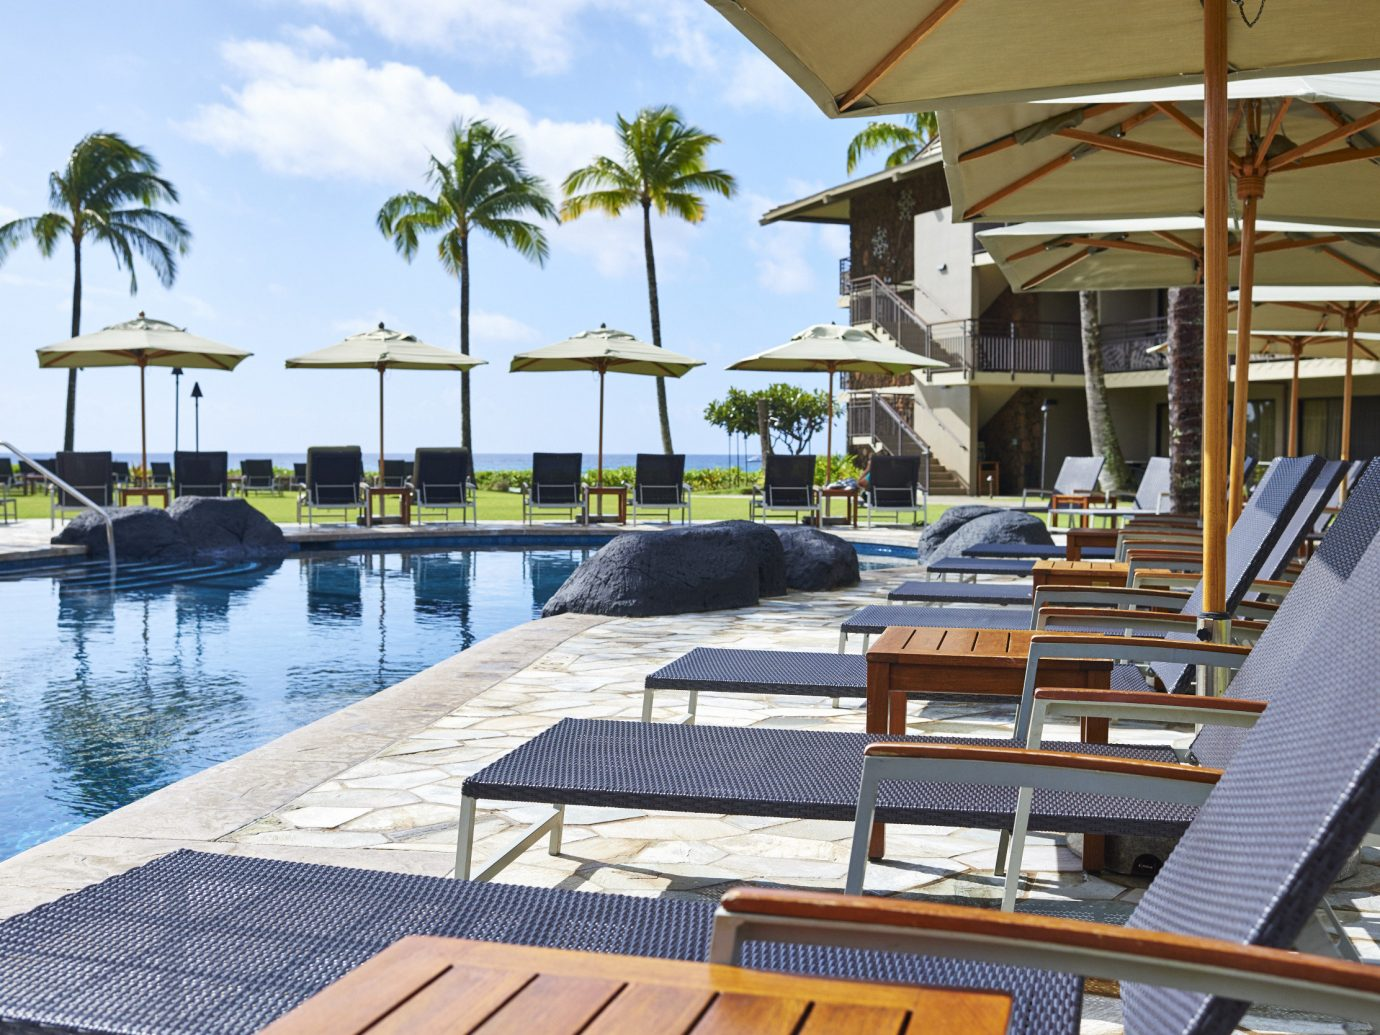 Hotels Romance outdoor chair property condominium leisure Resort swimming pool estate vacation Villa home real estate dock marina mansion apartment furniture overlooking